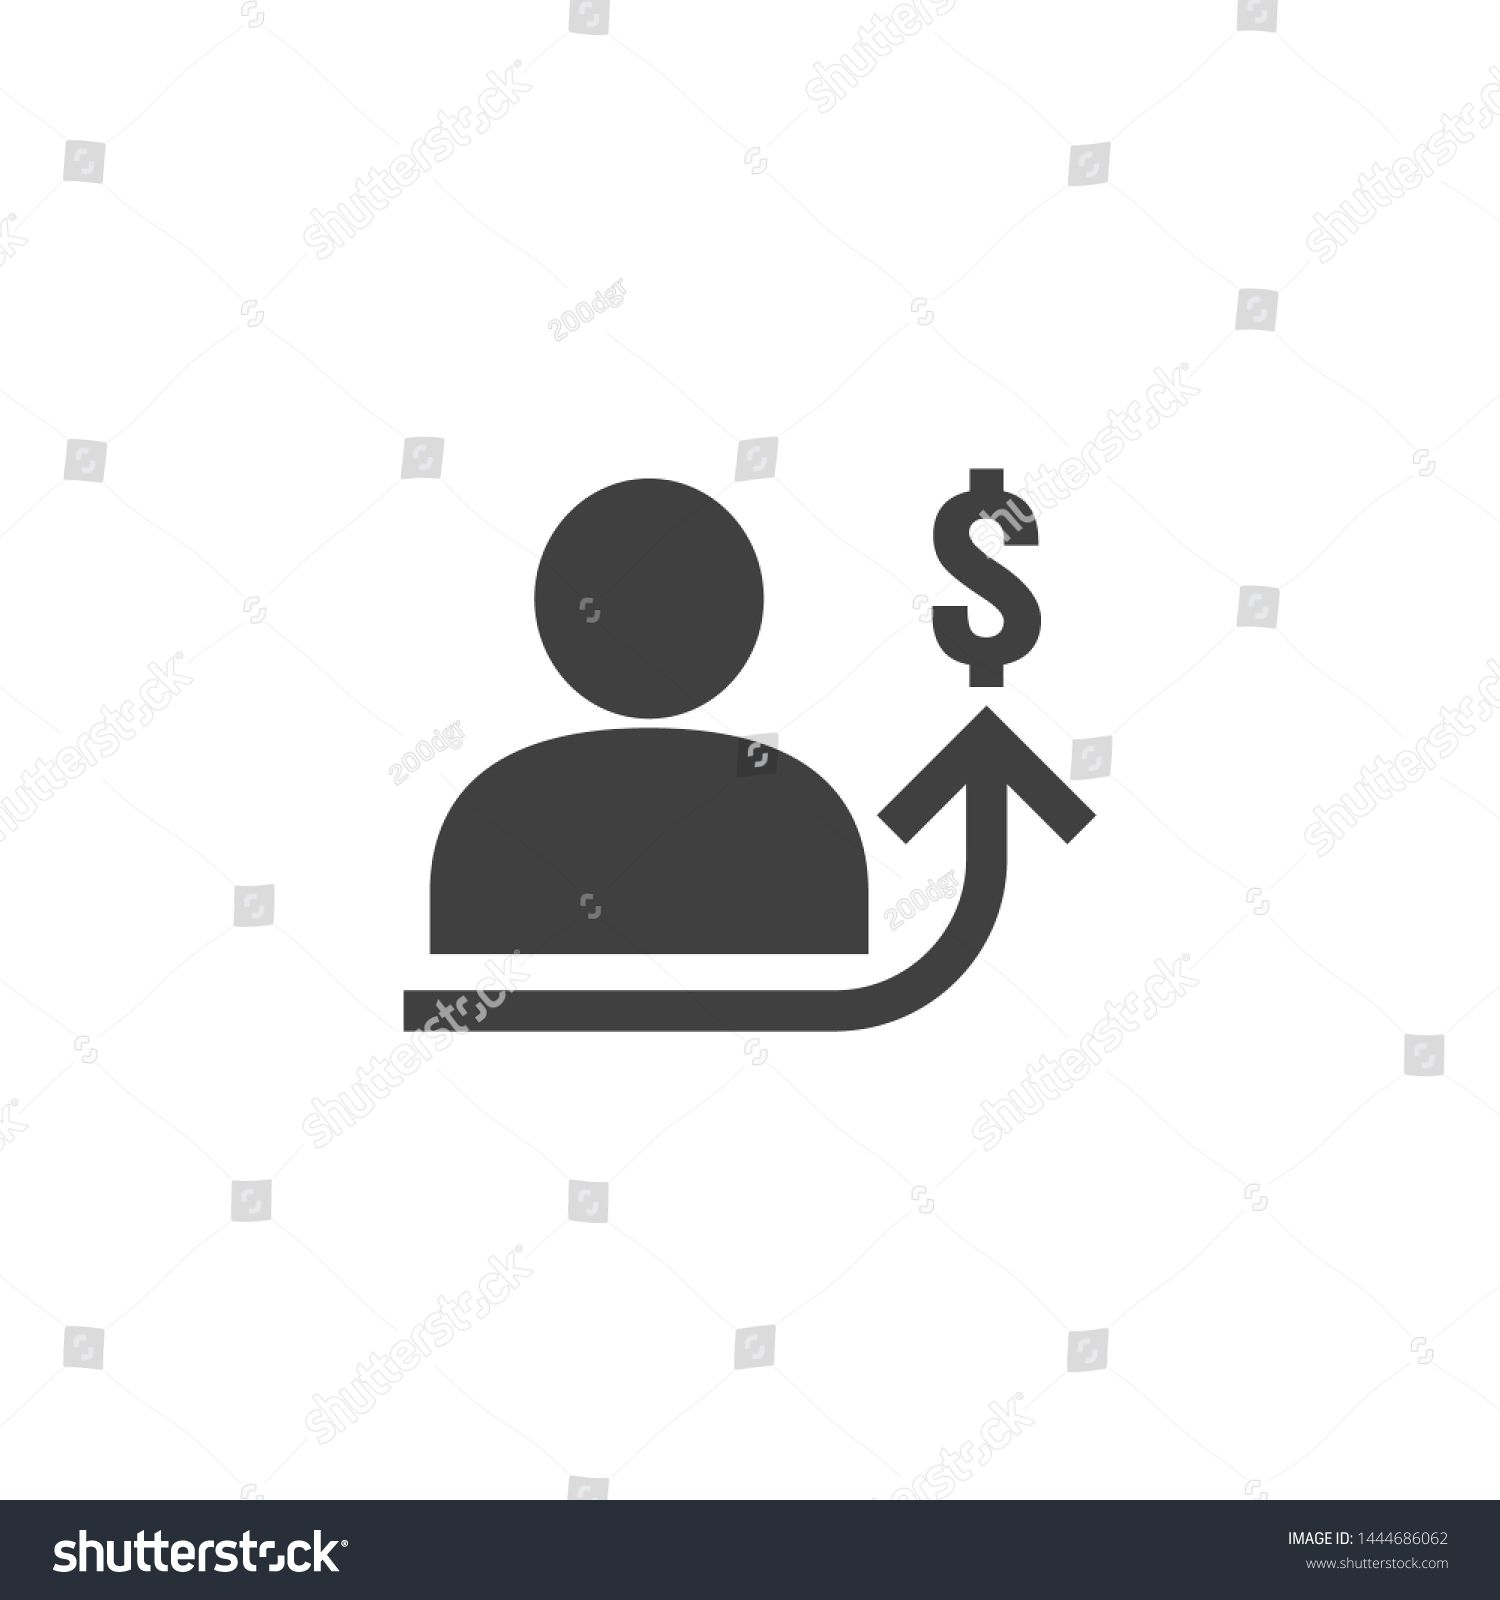 Employee Salary Increase Icon On White Background With People Arrow Up Graphic And Dollar Money Symbol Raise In 2020 Finance Investing Investing Money Investing Apps